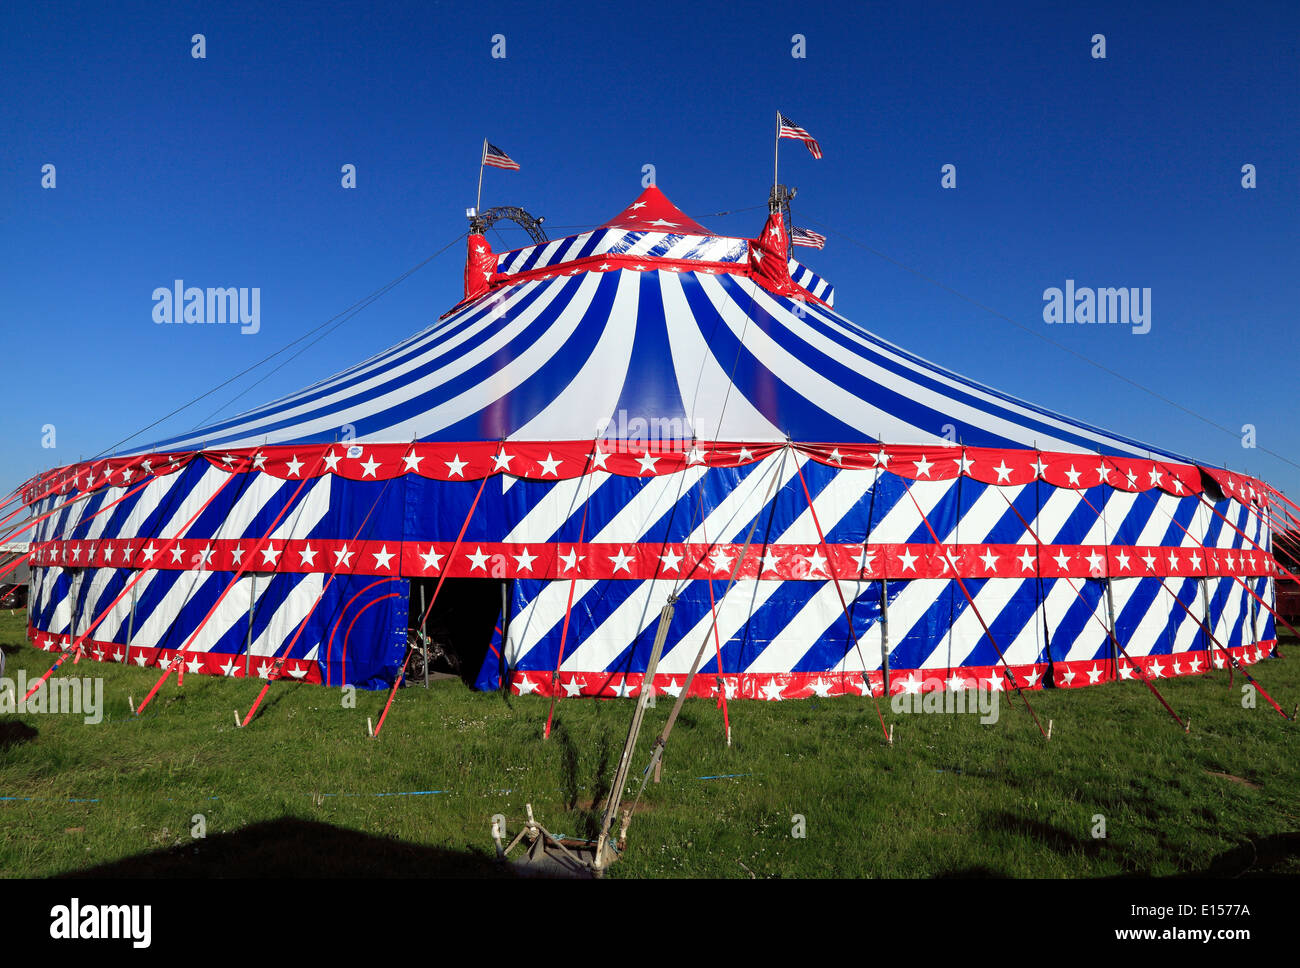 Uncle Sam's American Circus, UK travelling traveling circus shows, Big Top tent, Norfolk, England - Stock Image